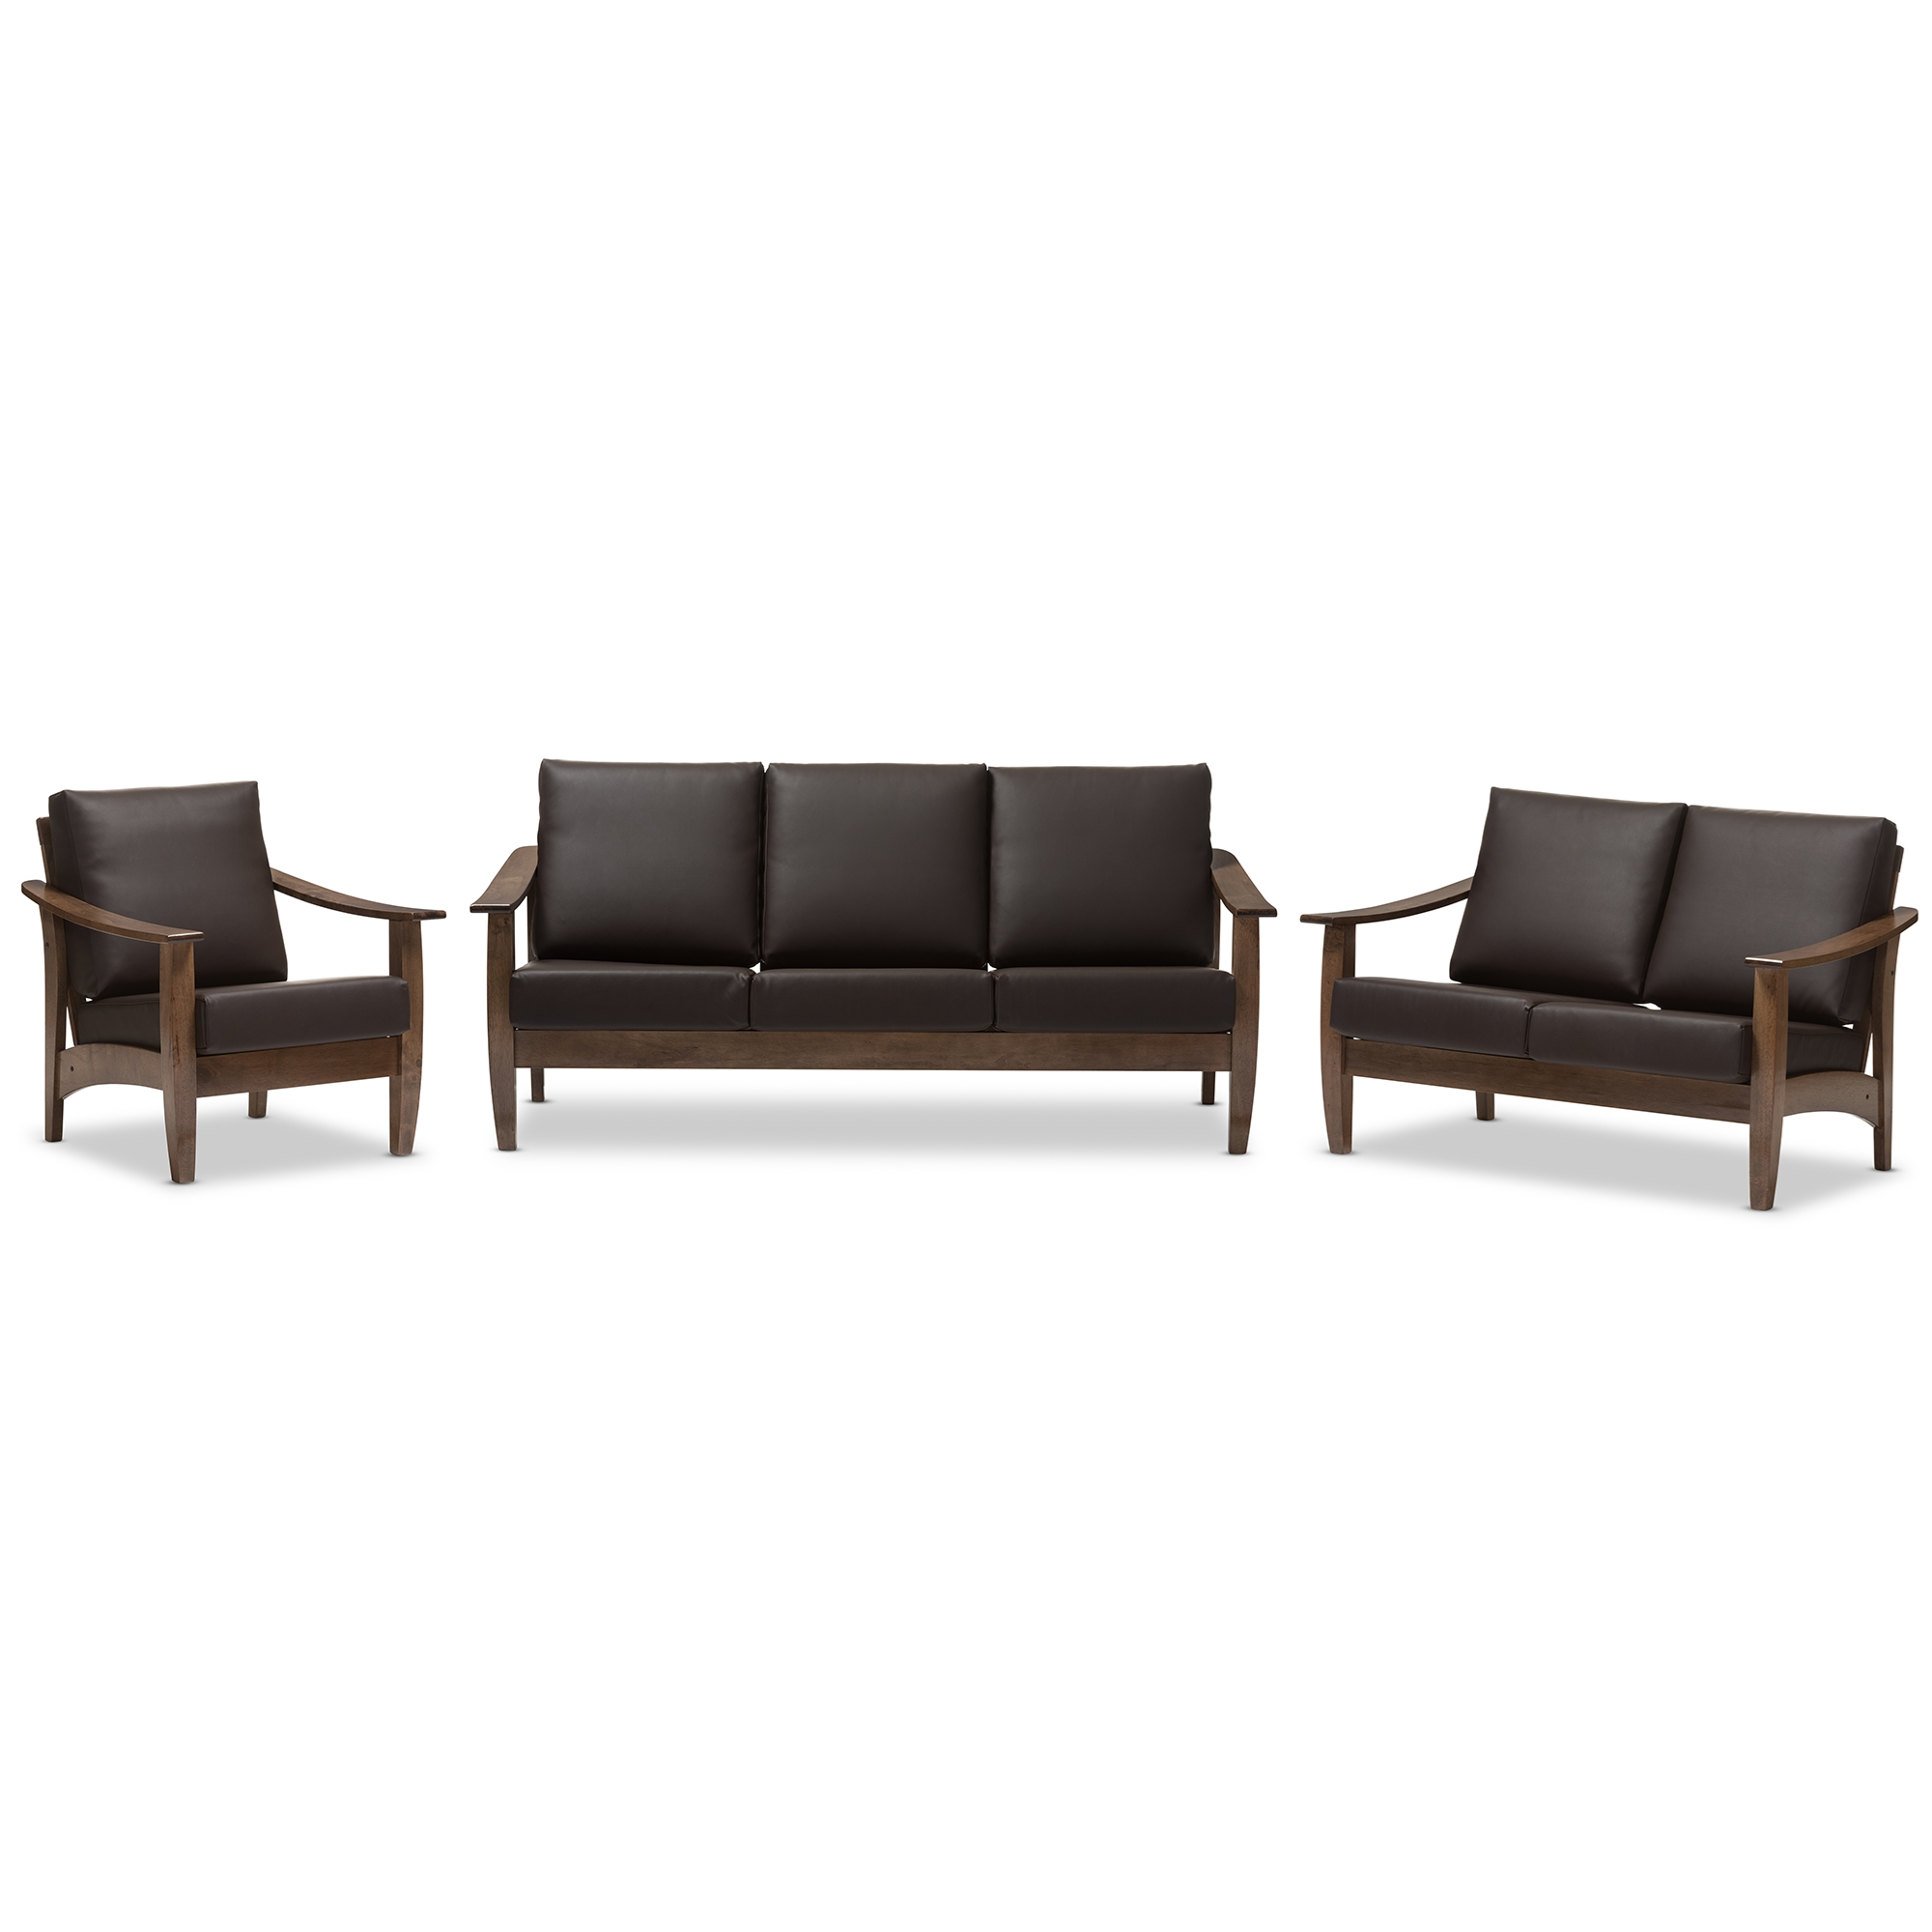 Baxton Studio Pierce Mid Century Modern Walnut Brown Wood And Dark Brown Faux  Leather Living Room 5 Piece Sofa And Occasional Table Set